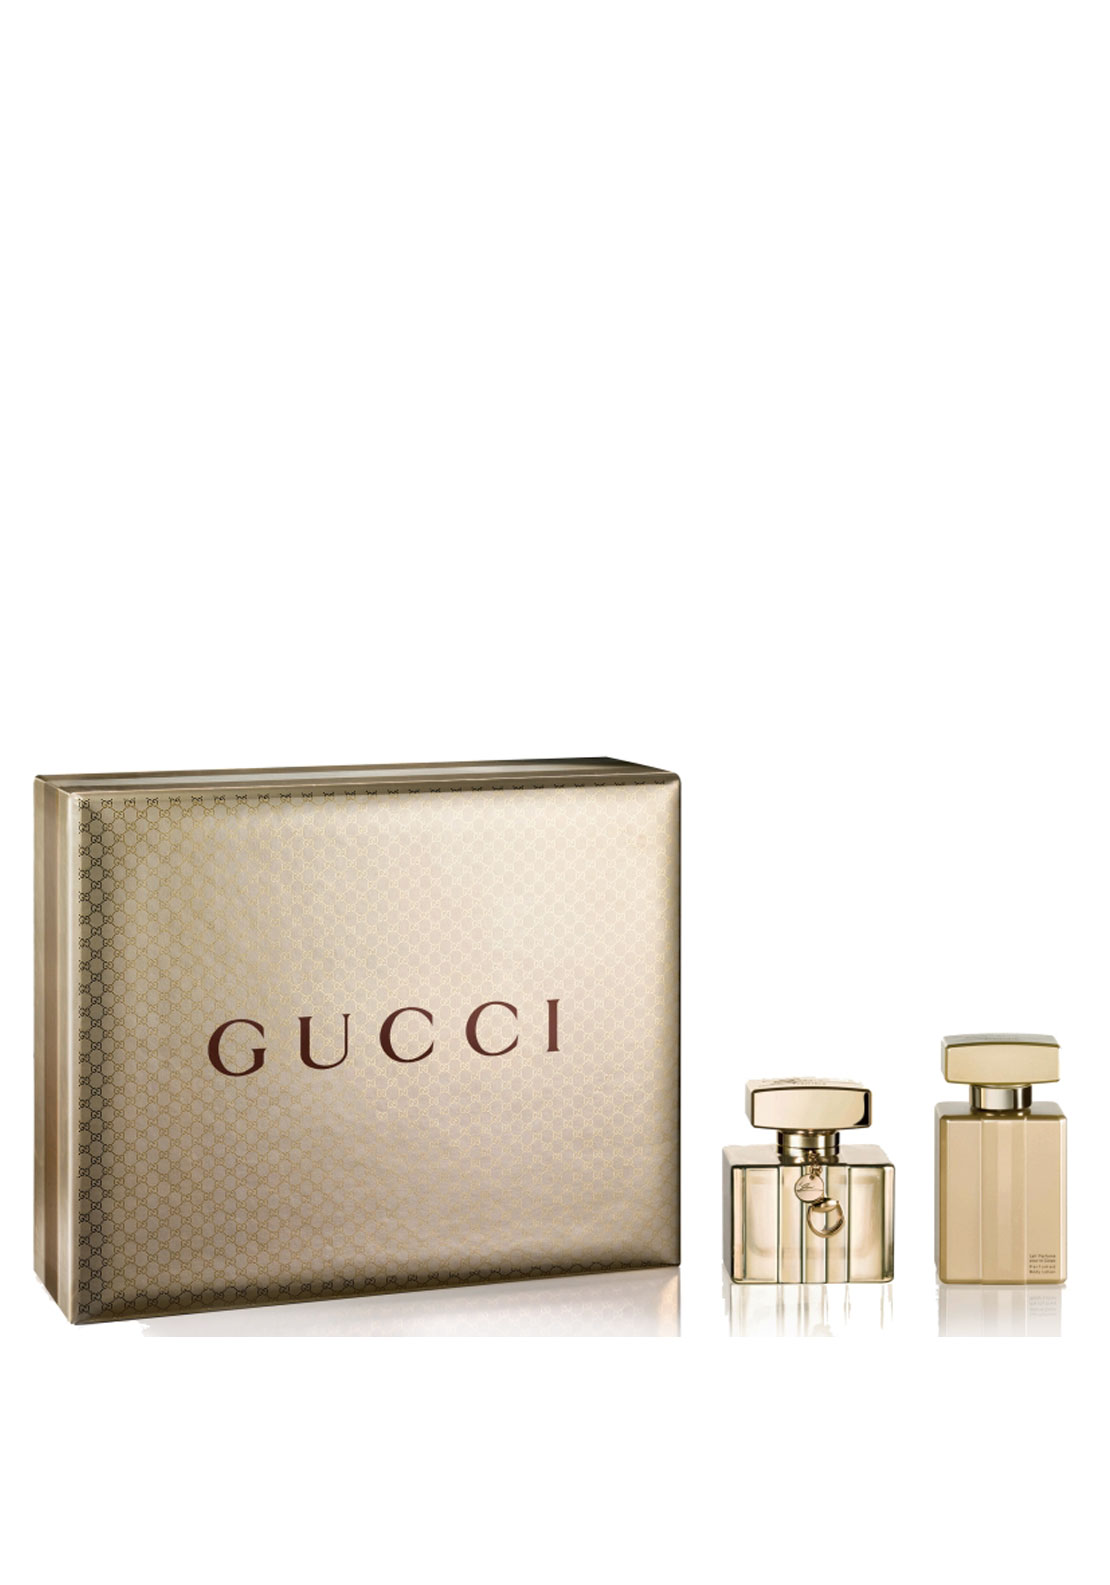 Gucci Premiere Gift Set, 50ml